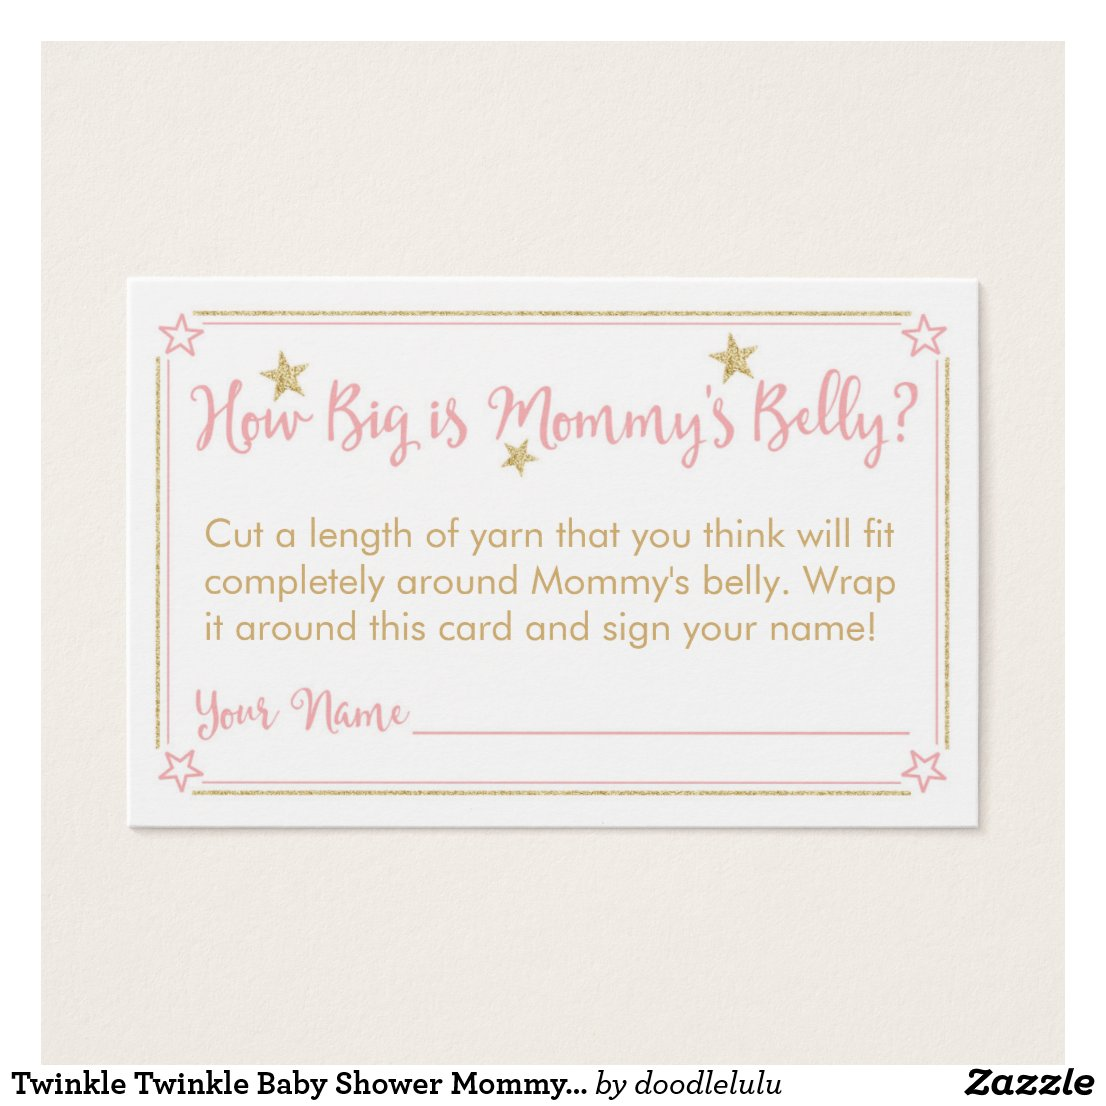 Twinkle Twinkle Baby Shower Mommy's Belly Card